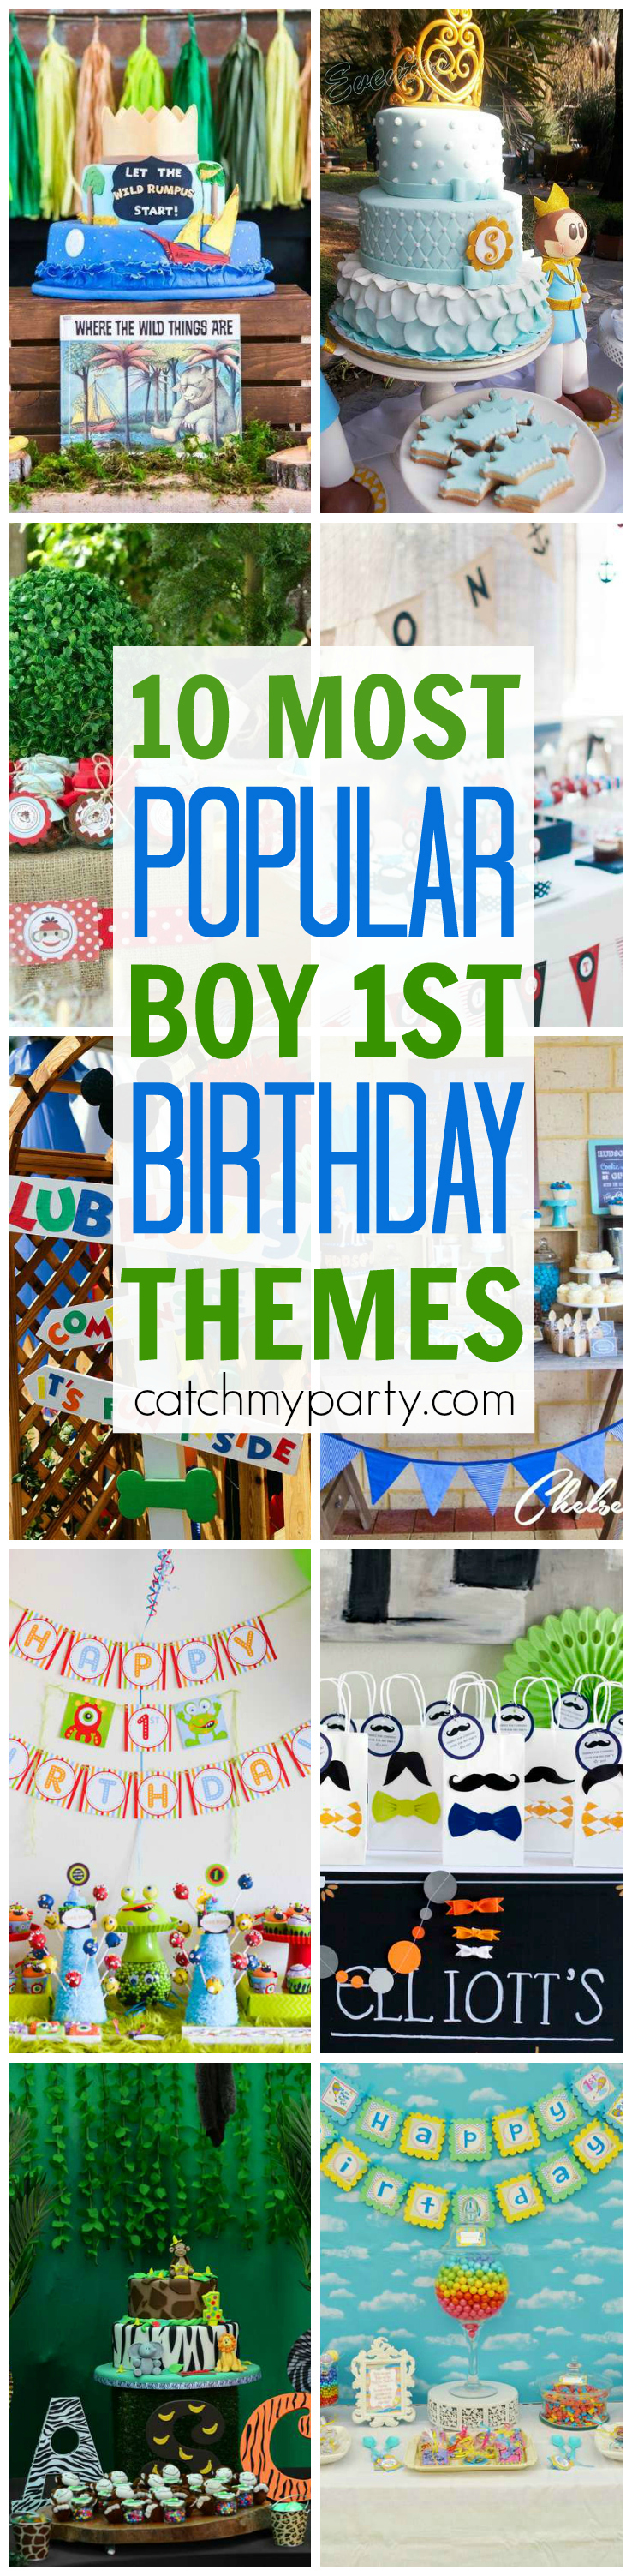 10 Most Popular Boy 1st Birthday Party Themes Catch My